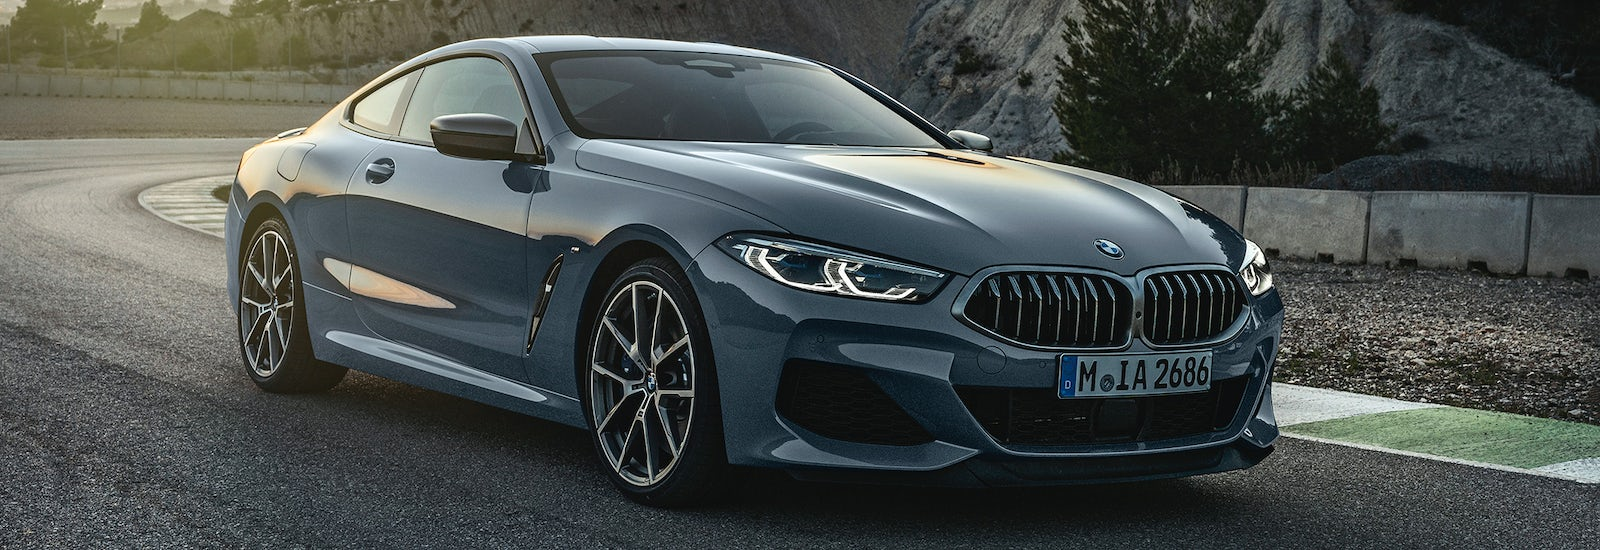 2018 BMW 8 Series | price,specs and release date | carwow